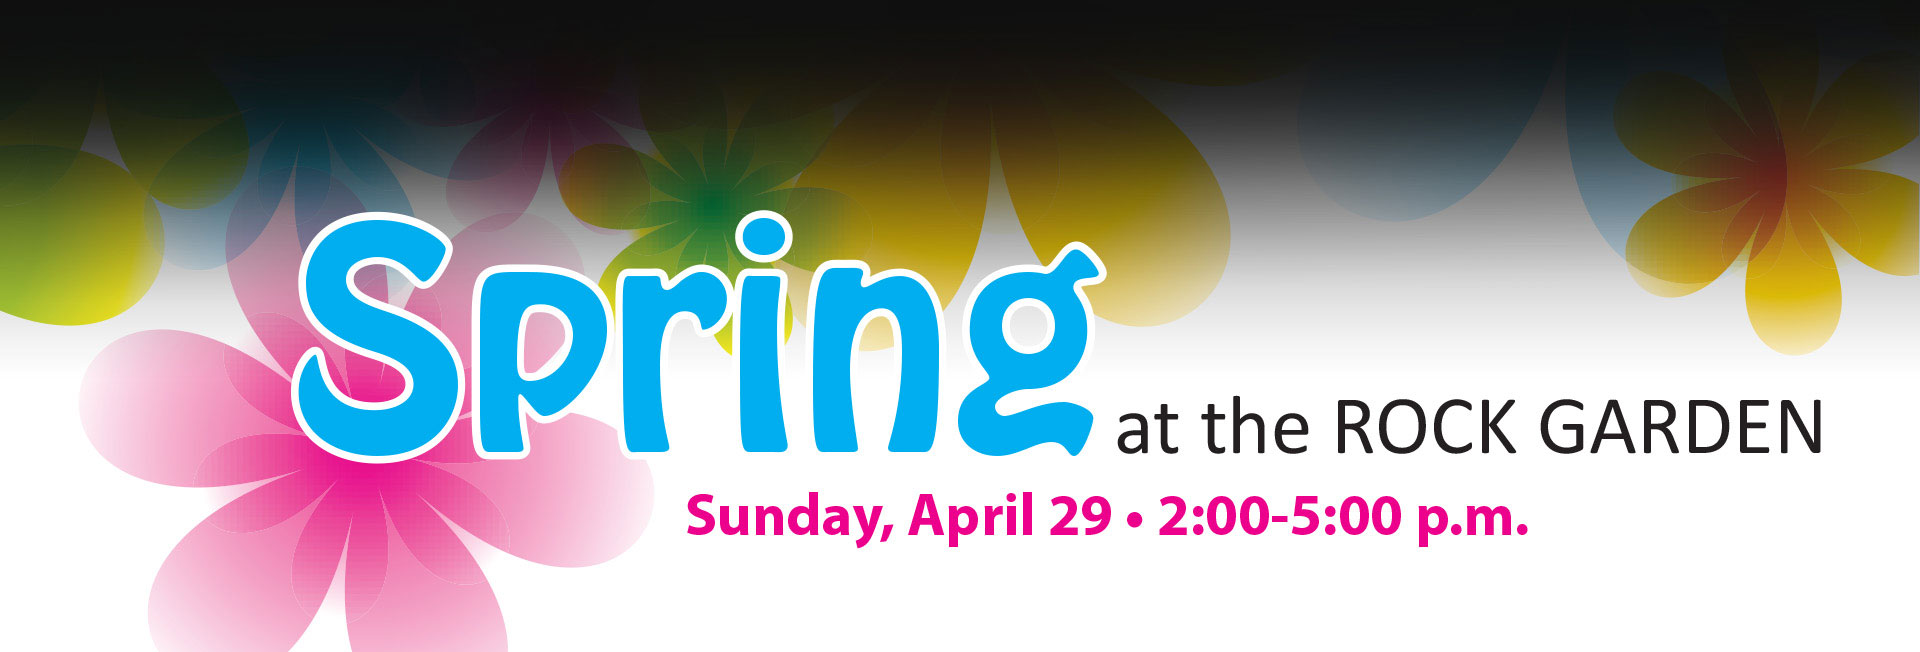 Spring at the ROCK GARDEN Sunday, April 29 -- 2:00-5:00 p.m.